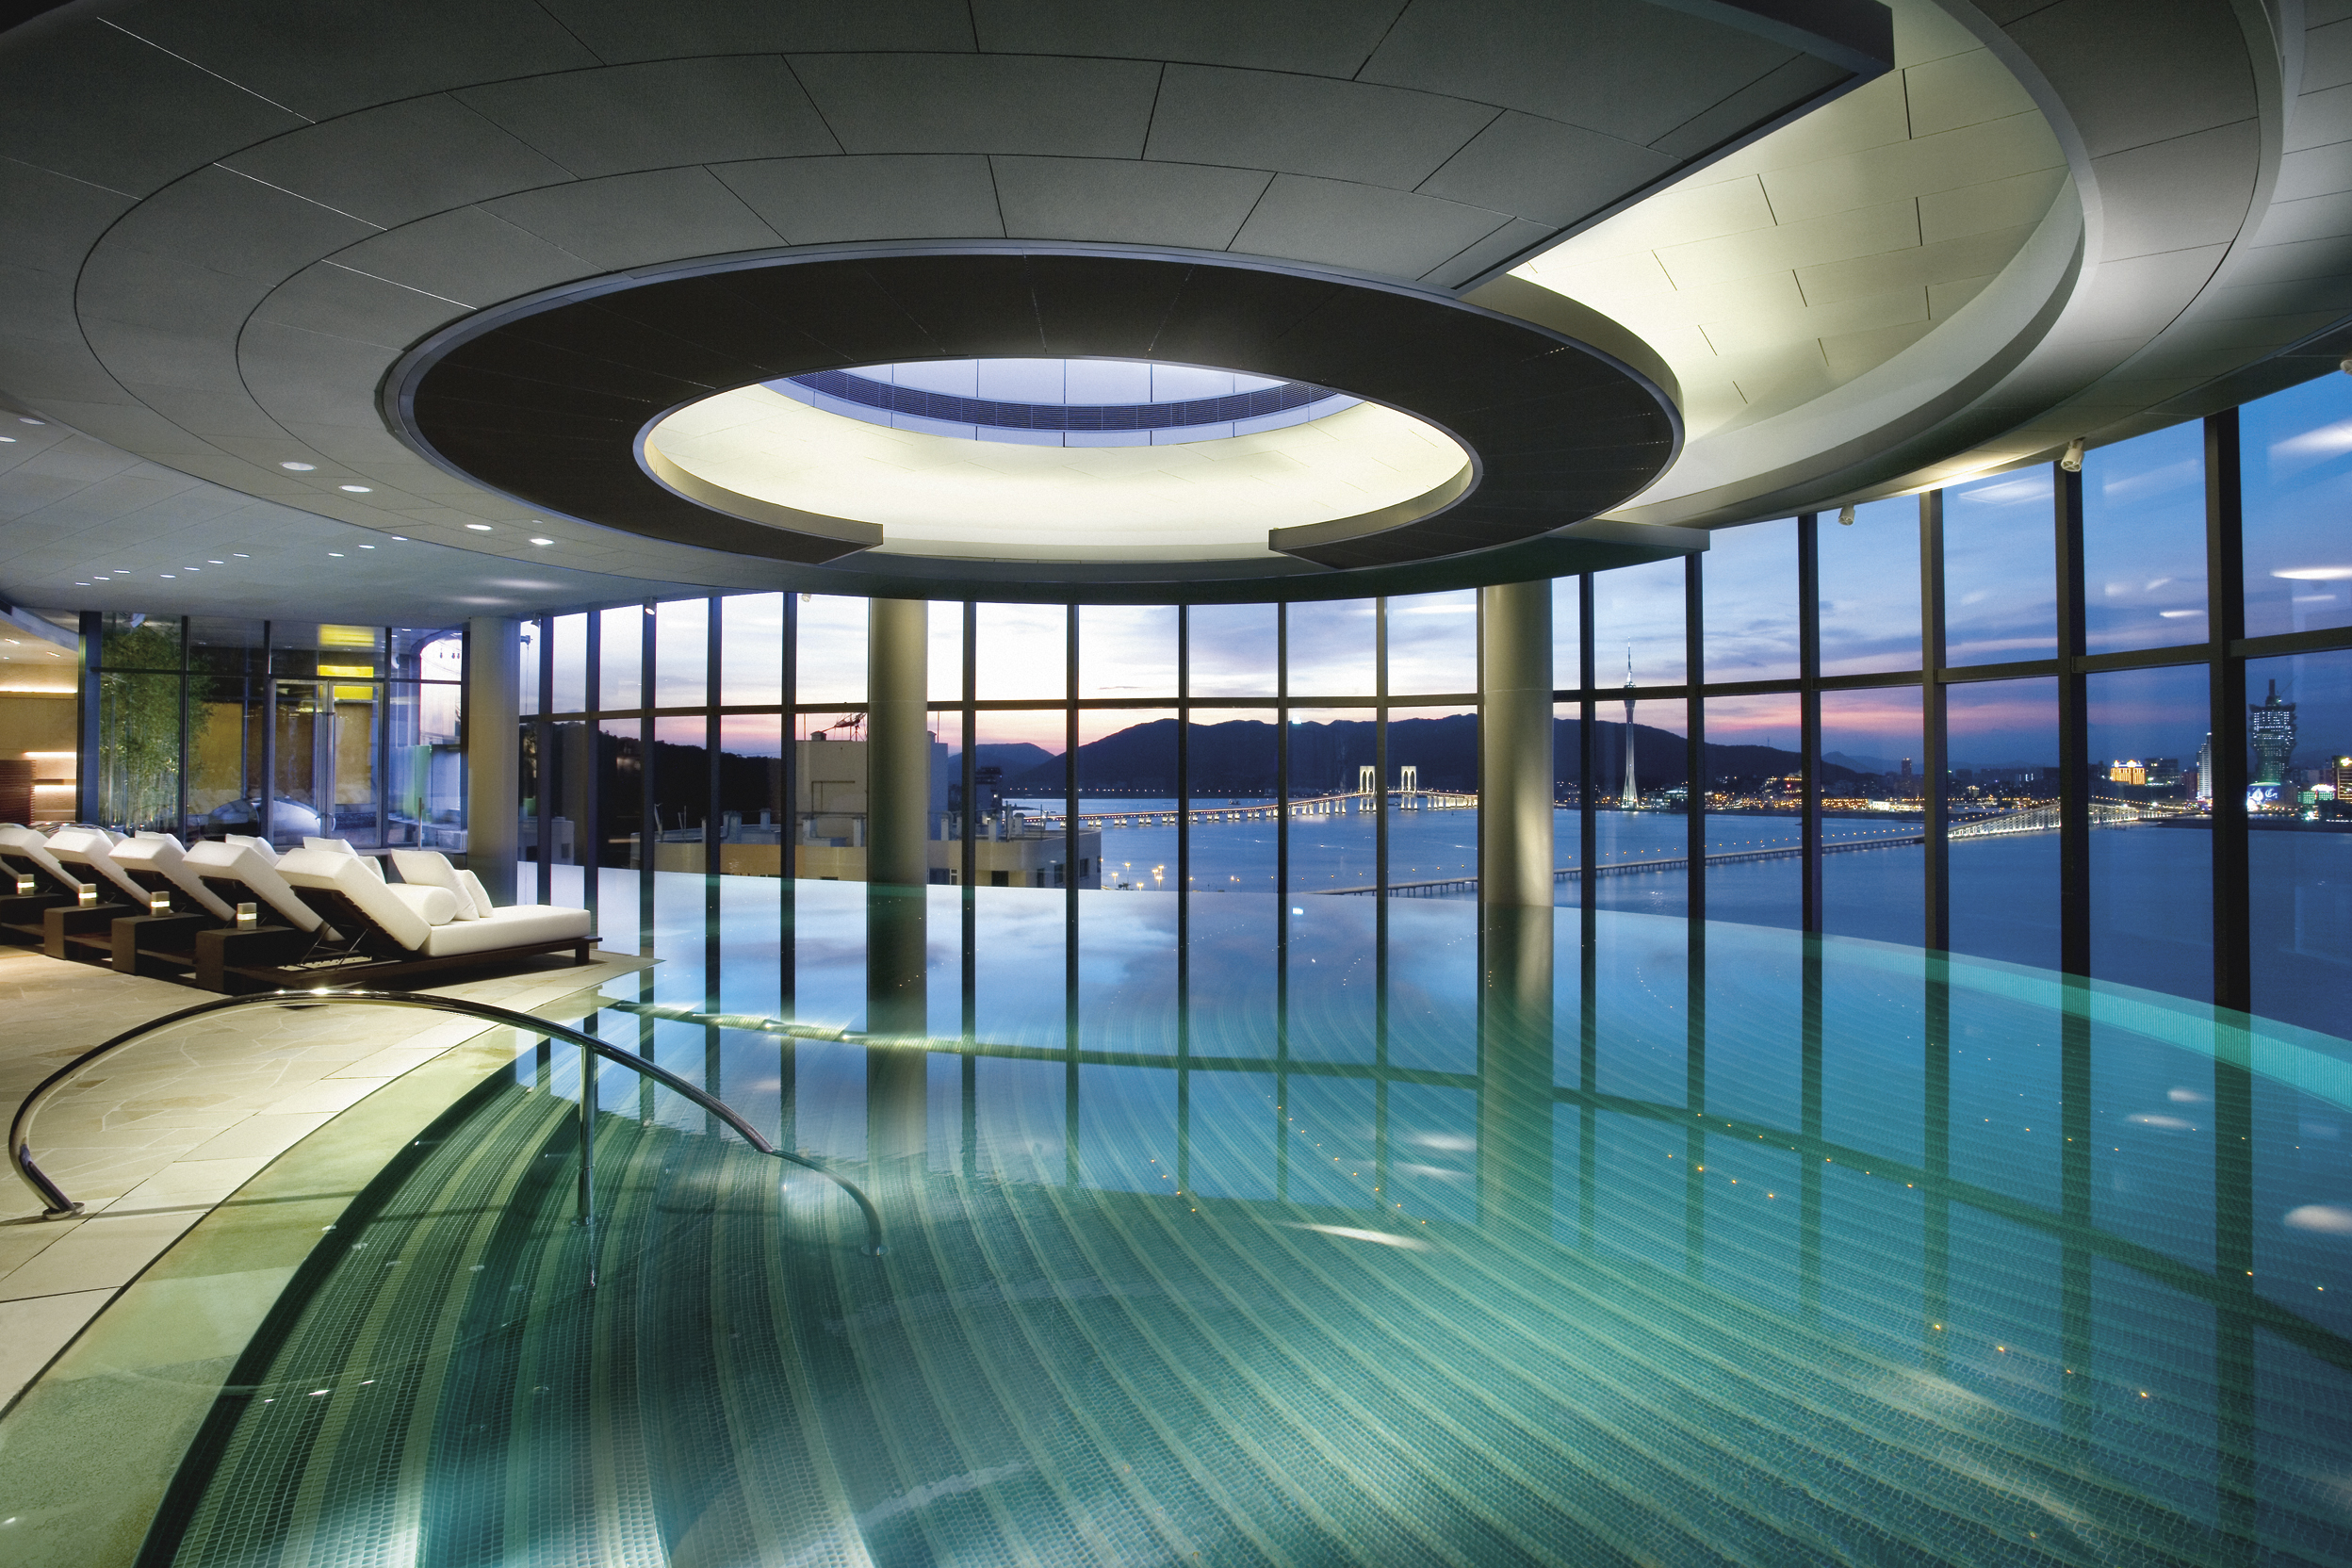 Indoor pool Swimming Cnncom Of The Best Indoor Hotel Pools Around The World Cnn Travel